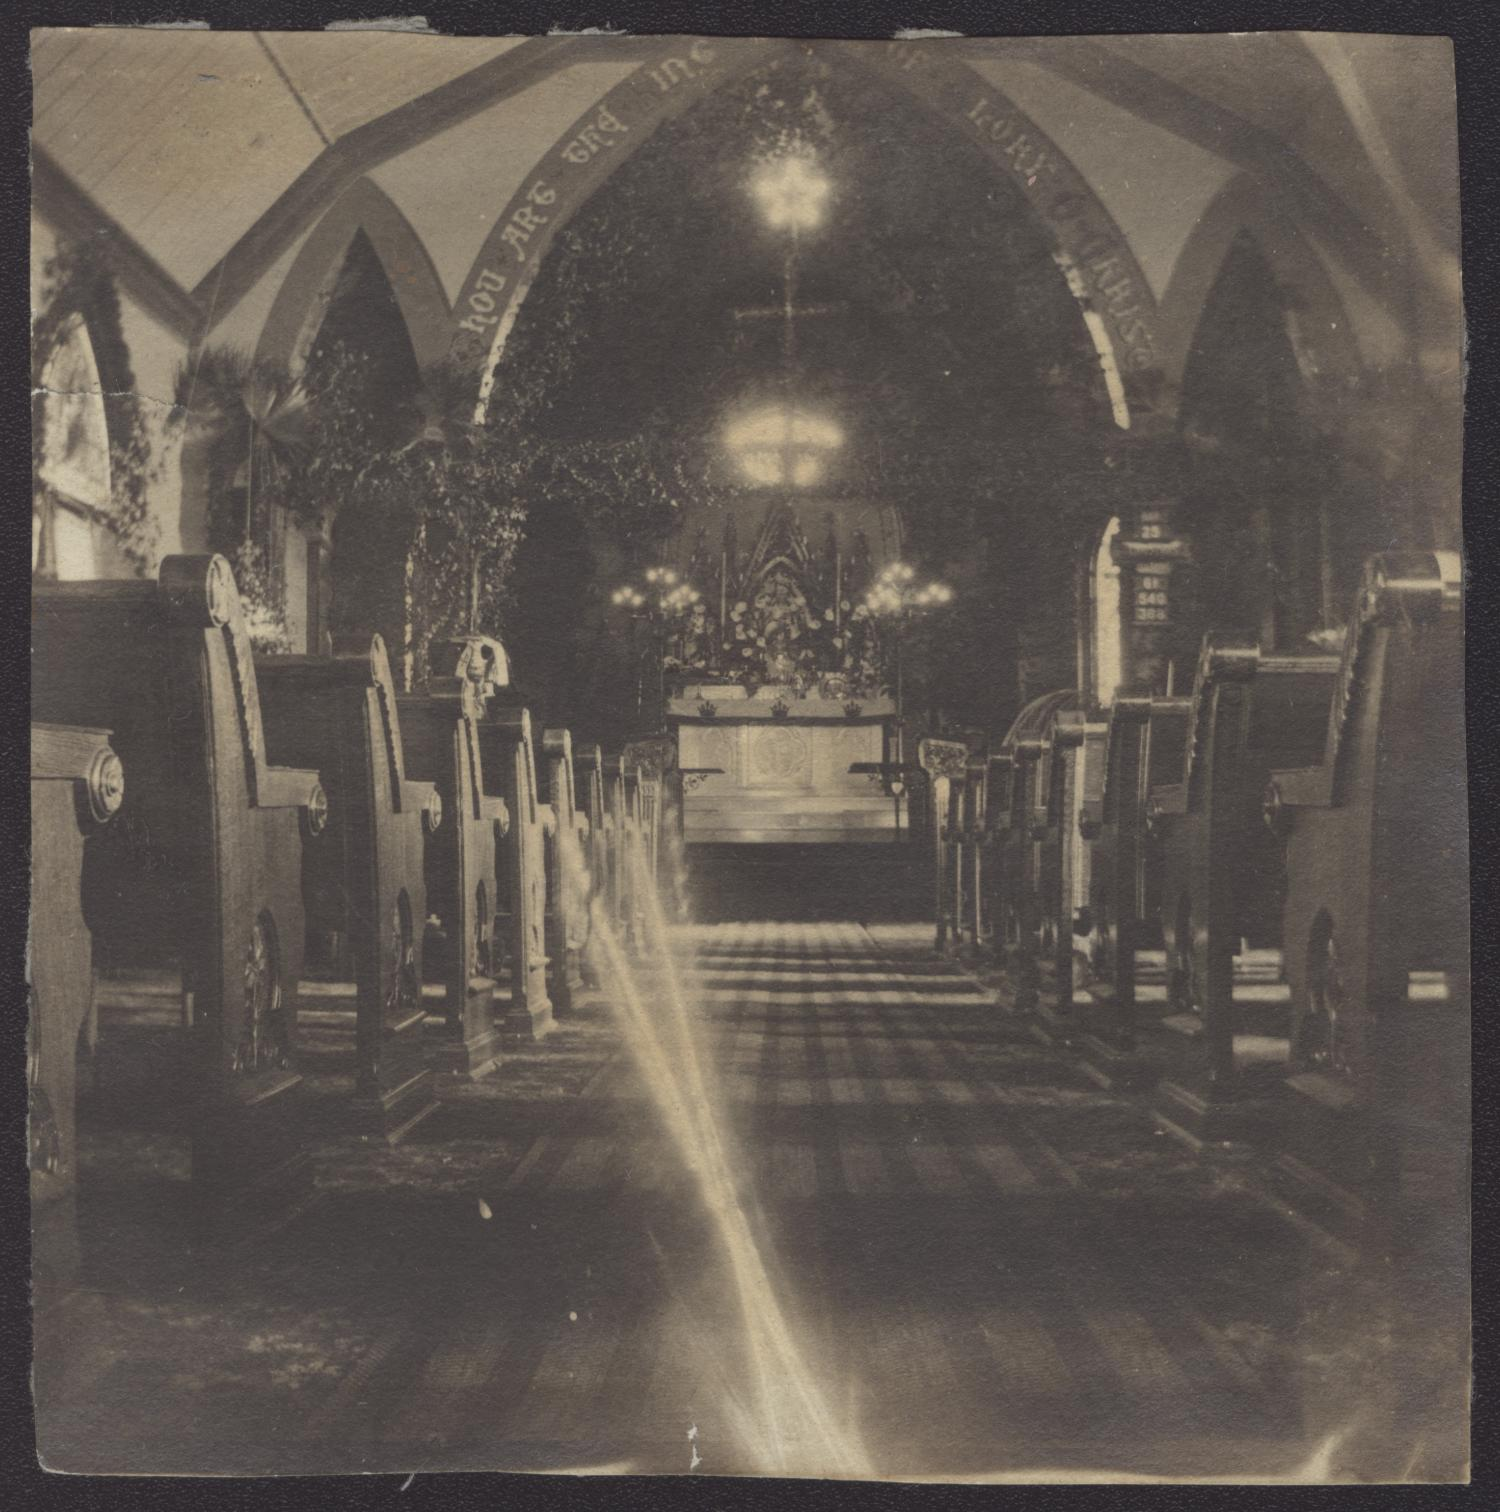 [Interior of St. Davids Episcopal Church], Photograph of the sanctuary of St. Davids Episcopal Church. It is decorated with lights and garland for Christmas.,